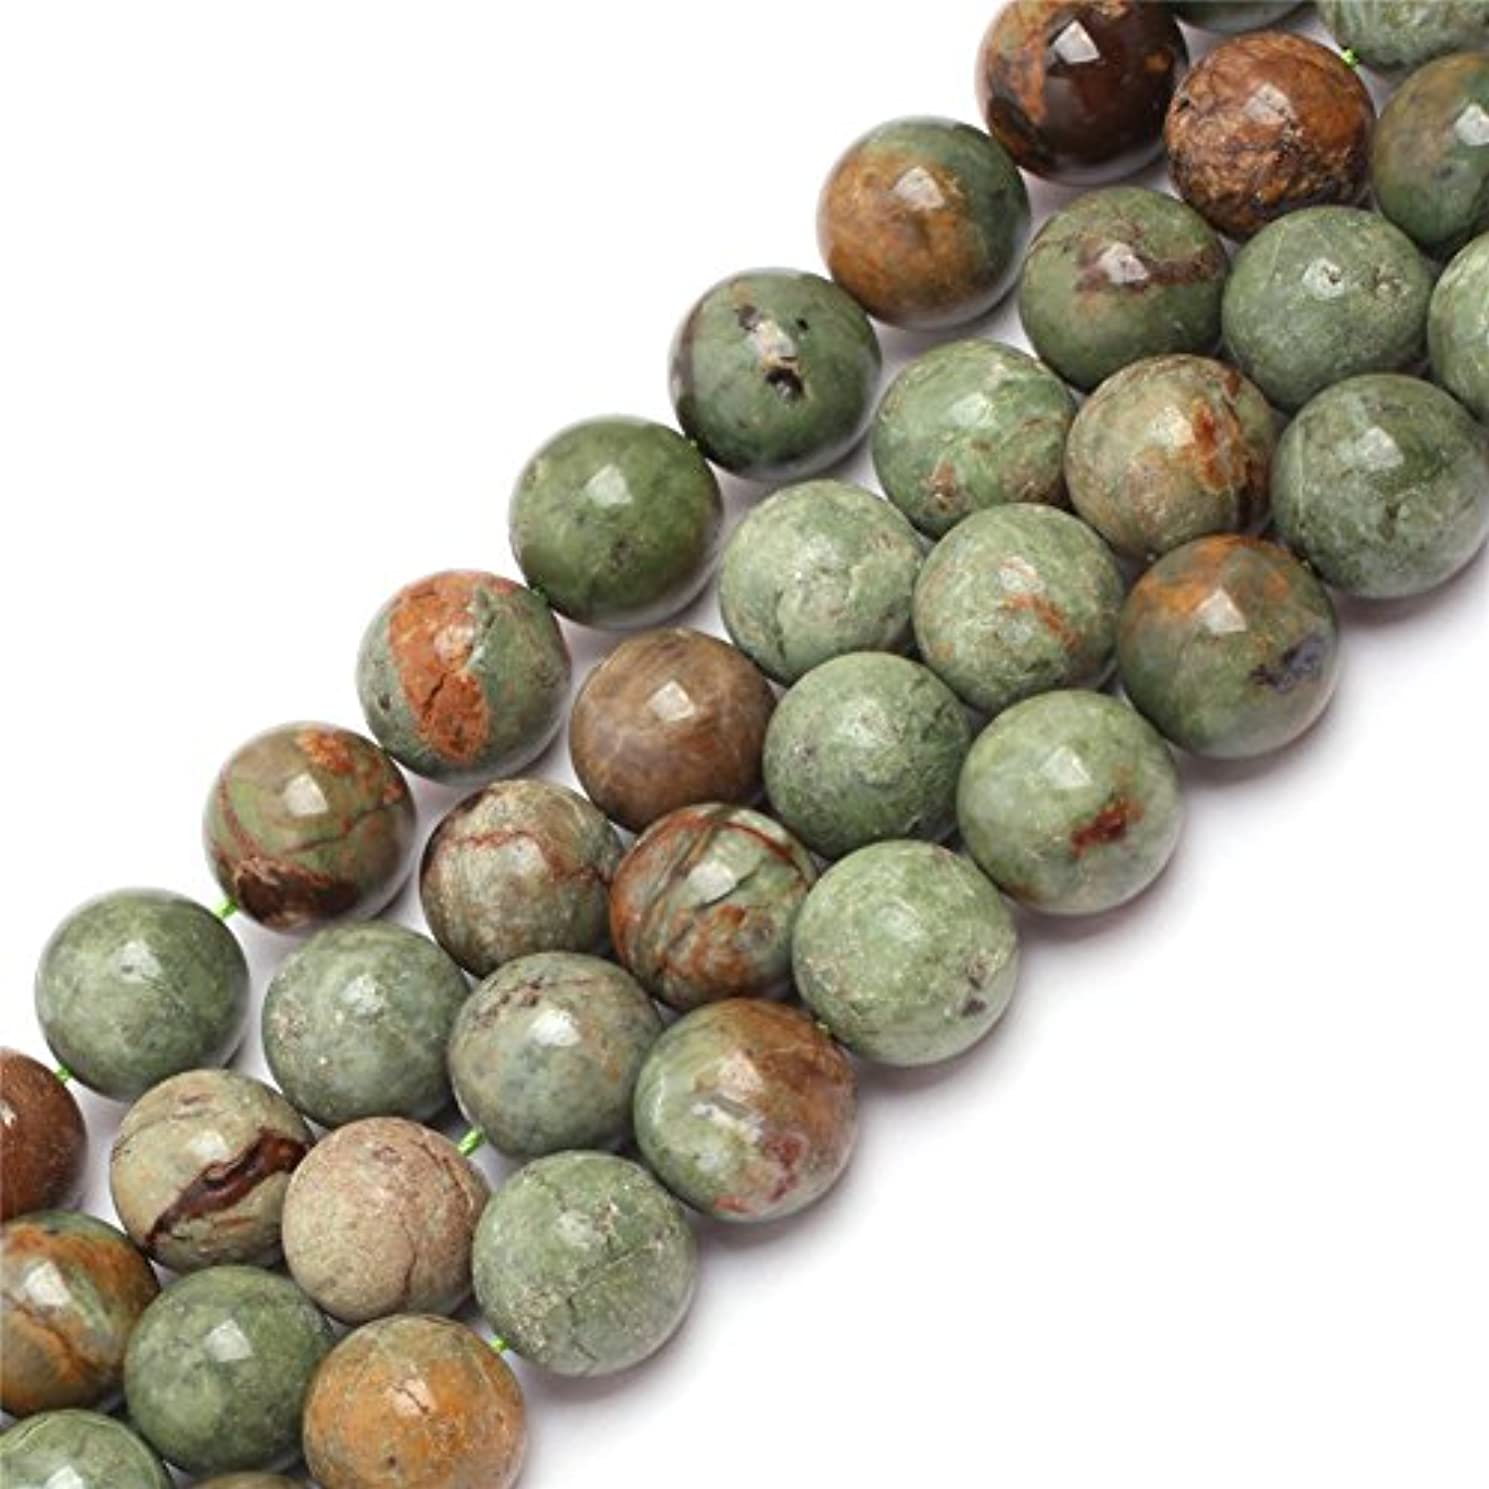 JOE FOREMAN 14mm Green Opal Semi Precious Gemstone Round Loose Beads for Jewelry Making DIY Handmade Craft Supplies 15